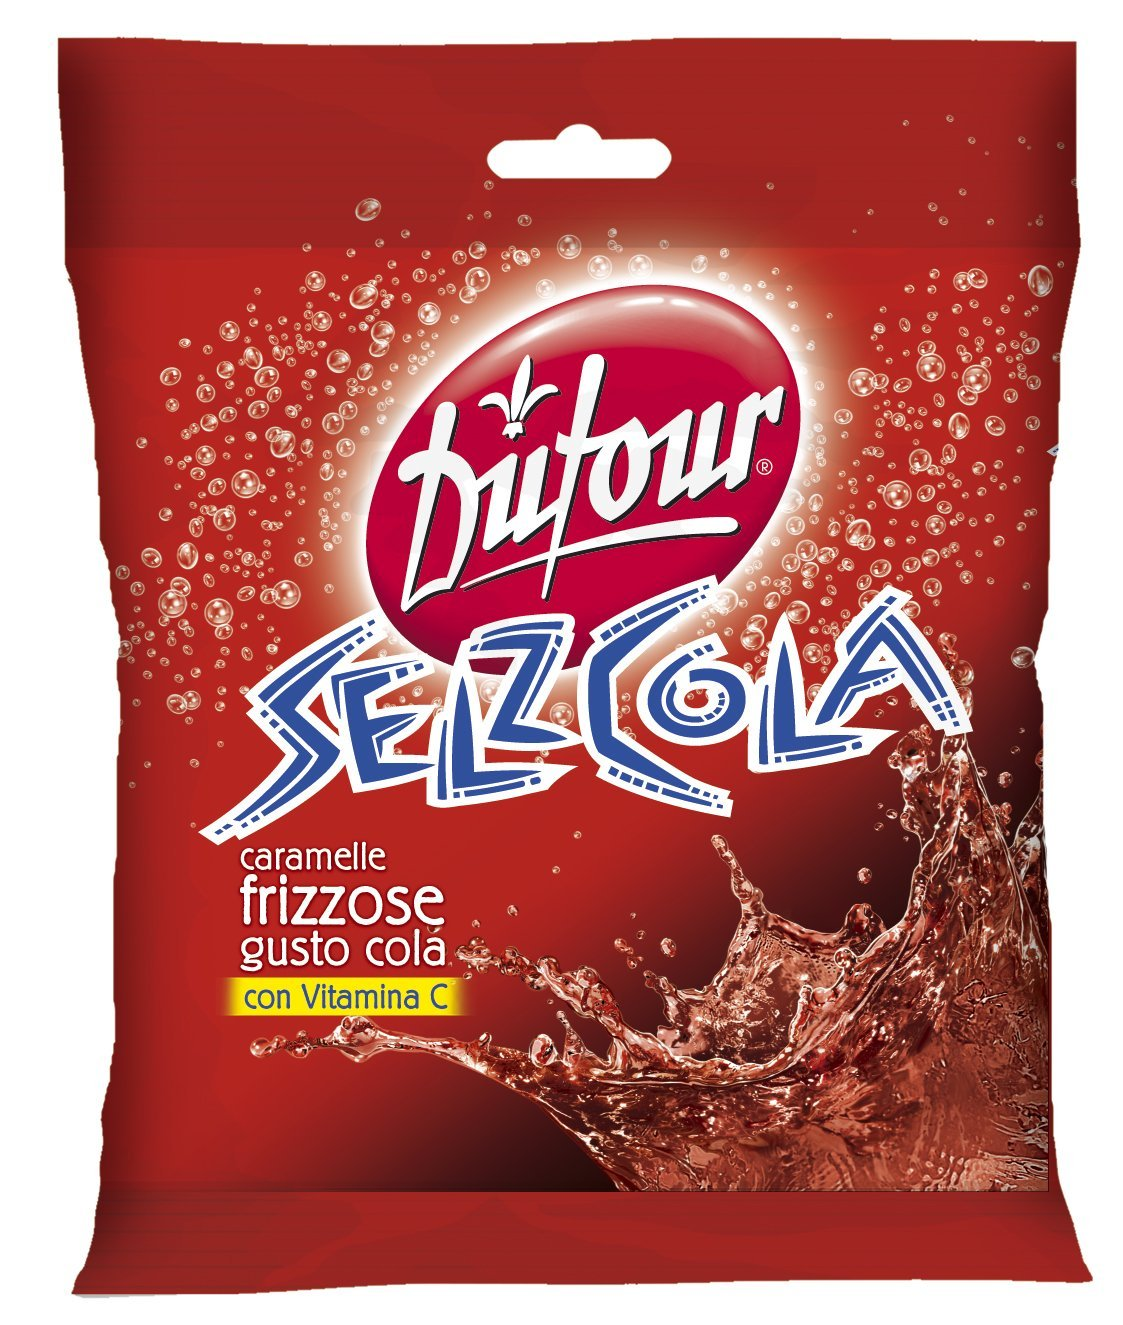 Amazon.com : Dufour Selz Cola Fizzy-filled Candy (7.05oz Bag) : Grocery & Gourmet Food